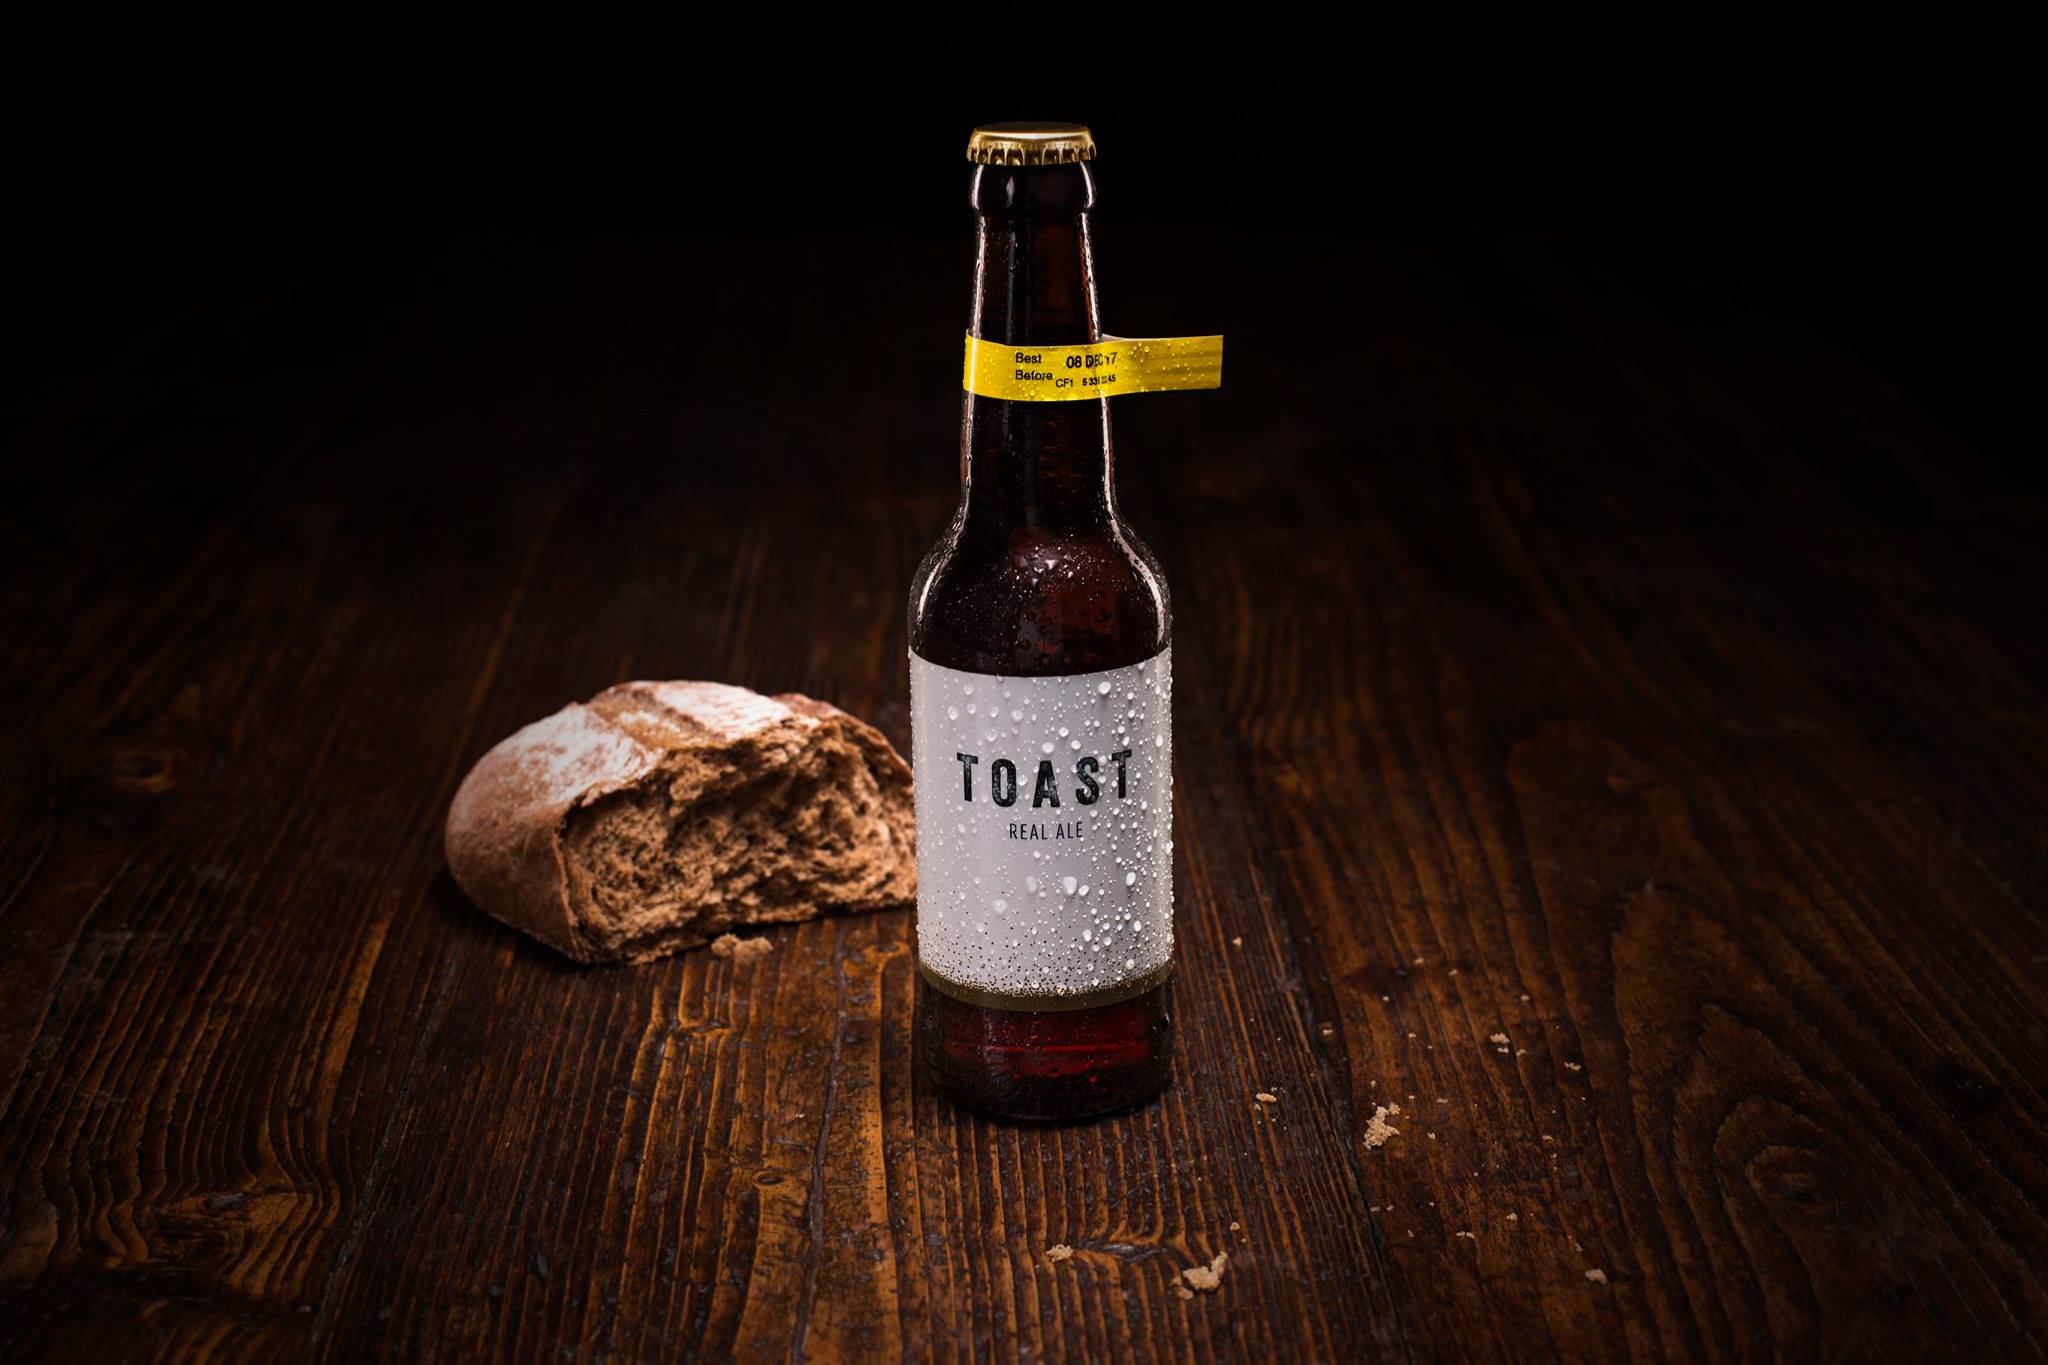 ethical_brands_toast_ale_morethislessthat_04.jpg